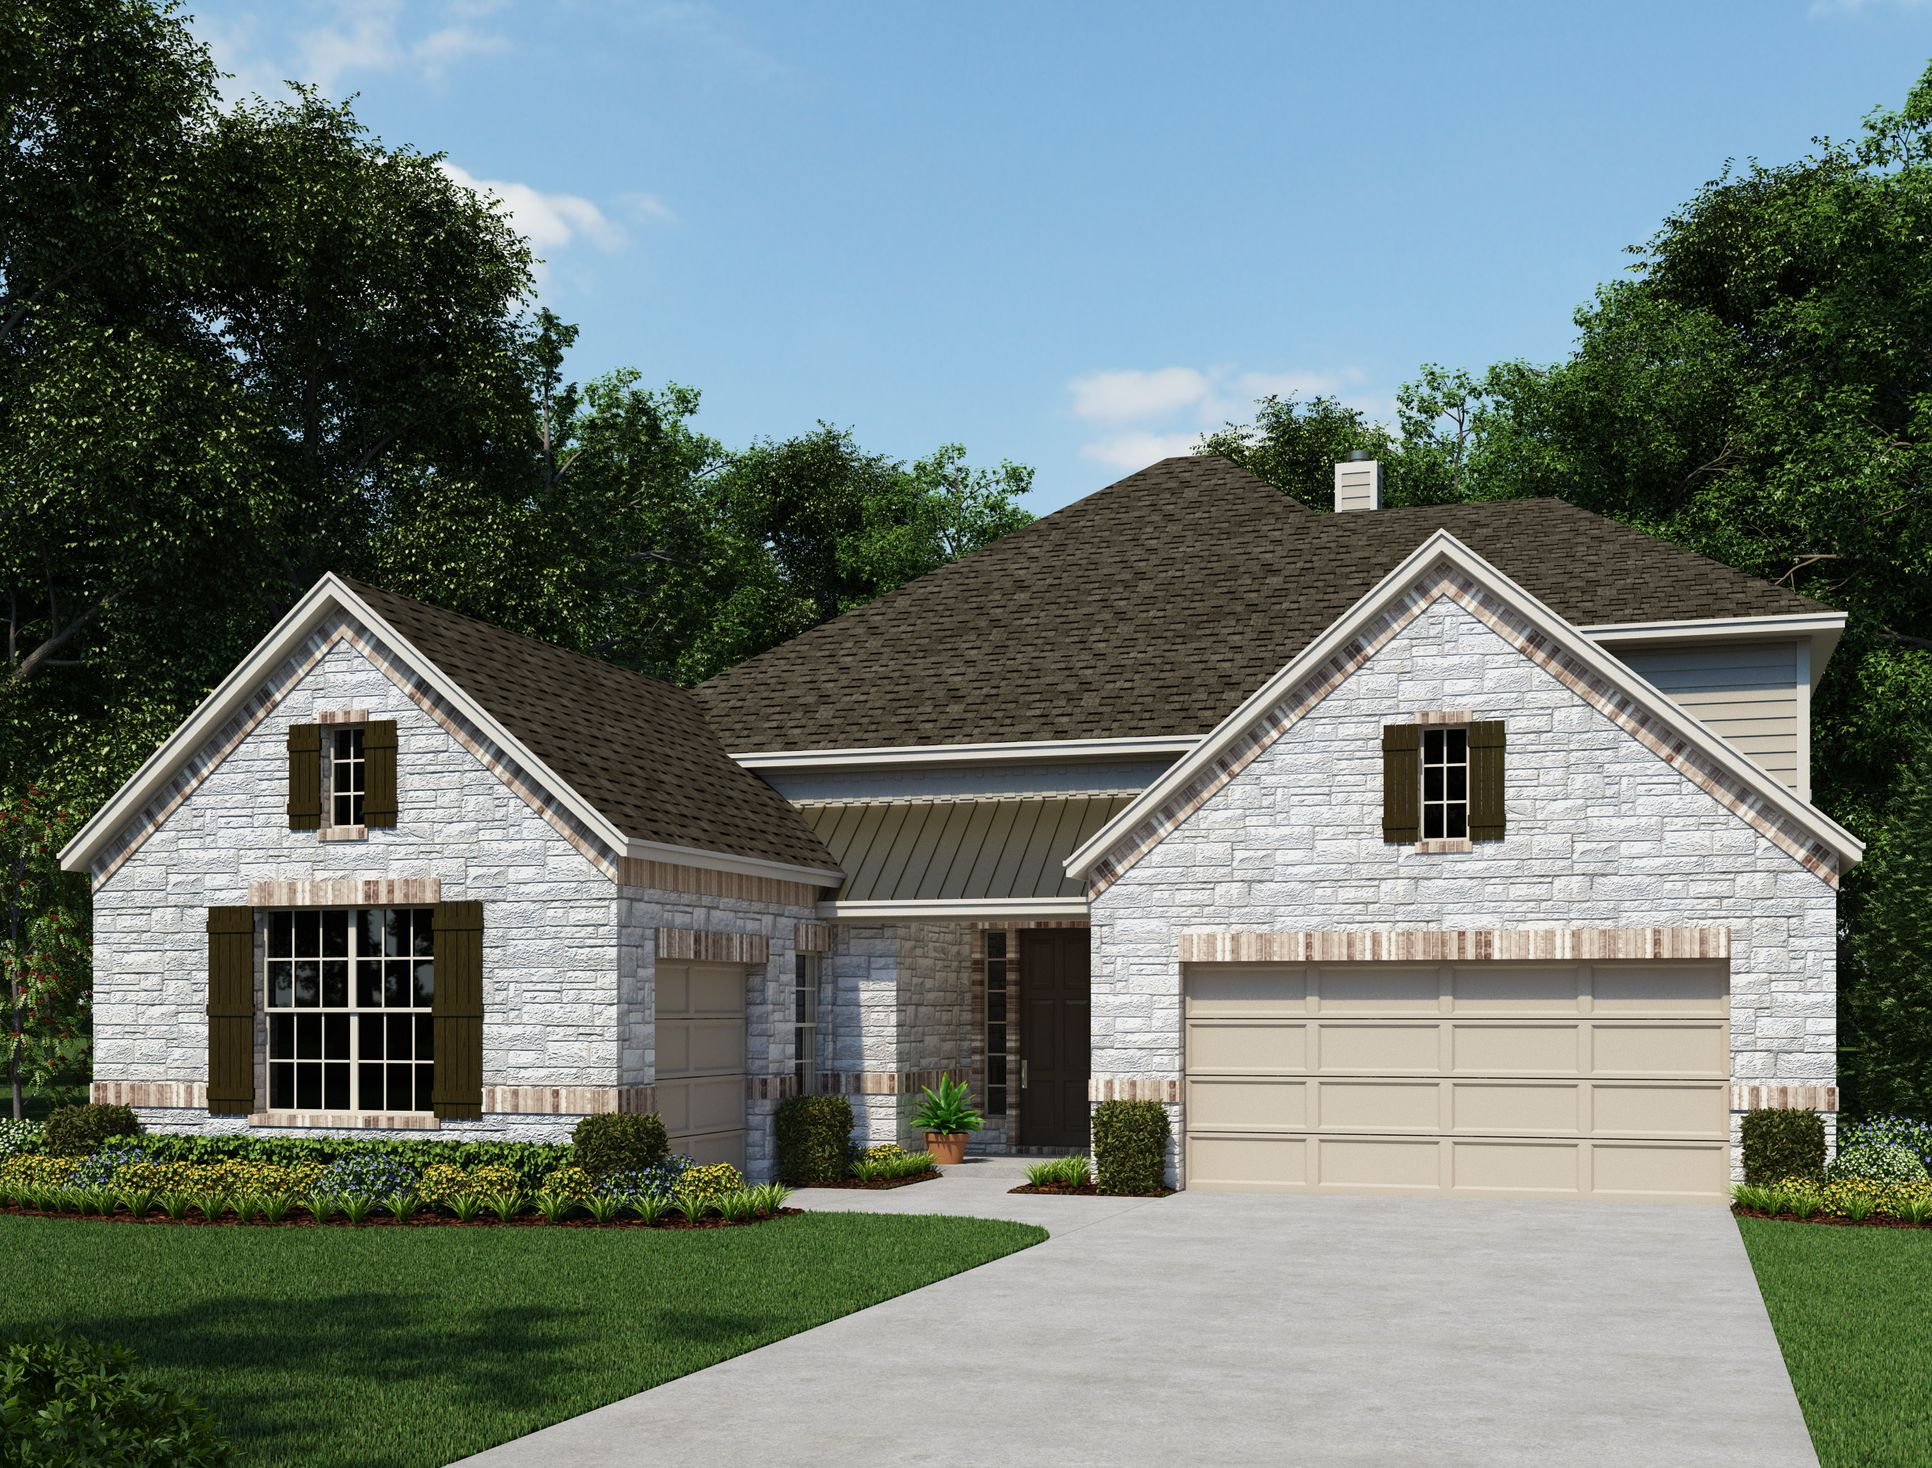 Exterior:The Estates at Stone Crossing - Montrose Elevation Image 1